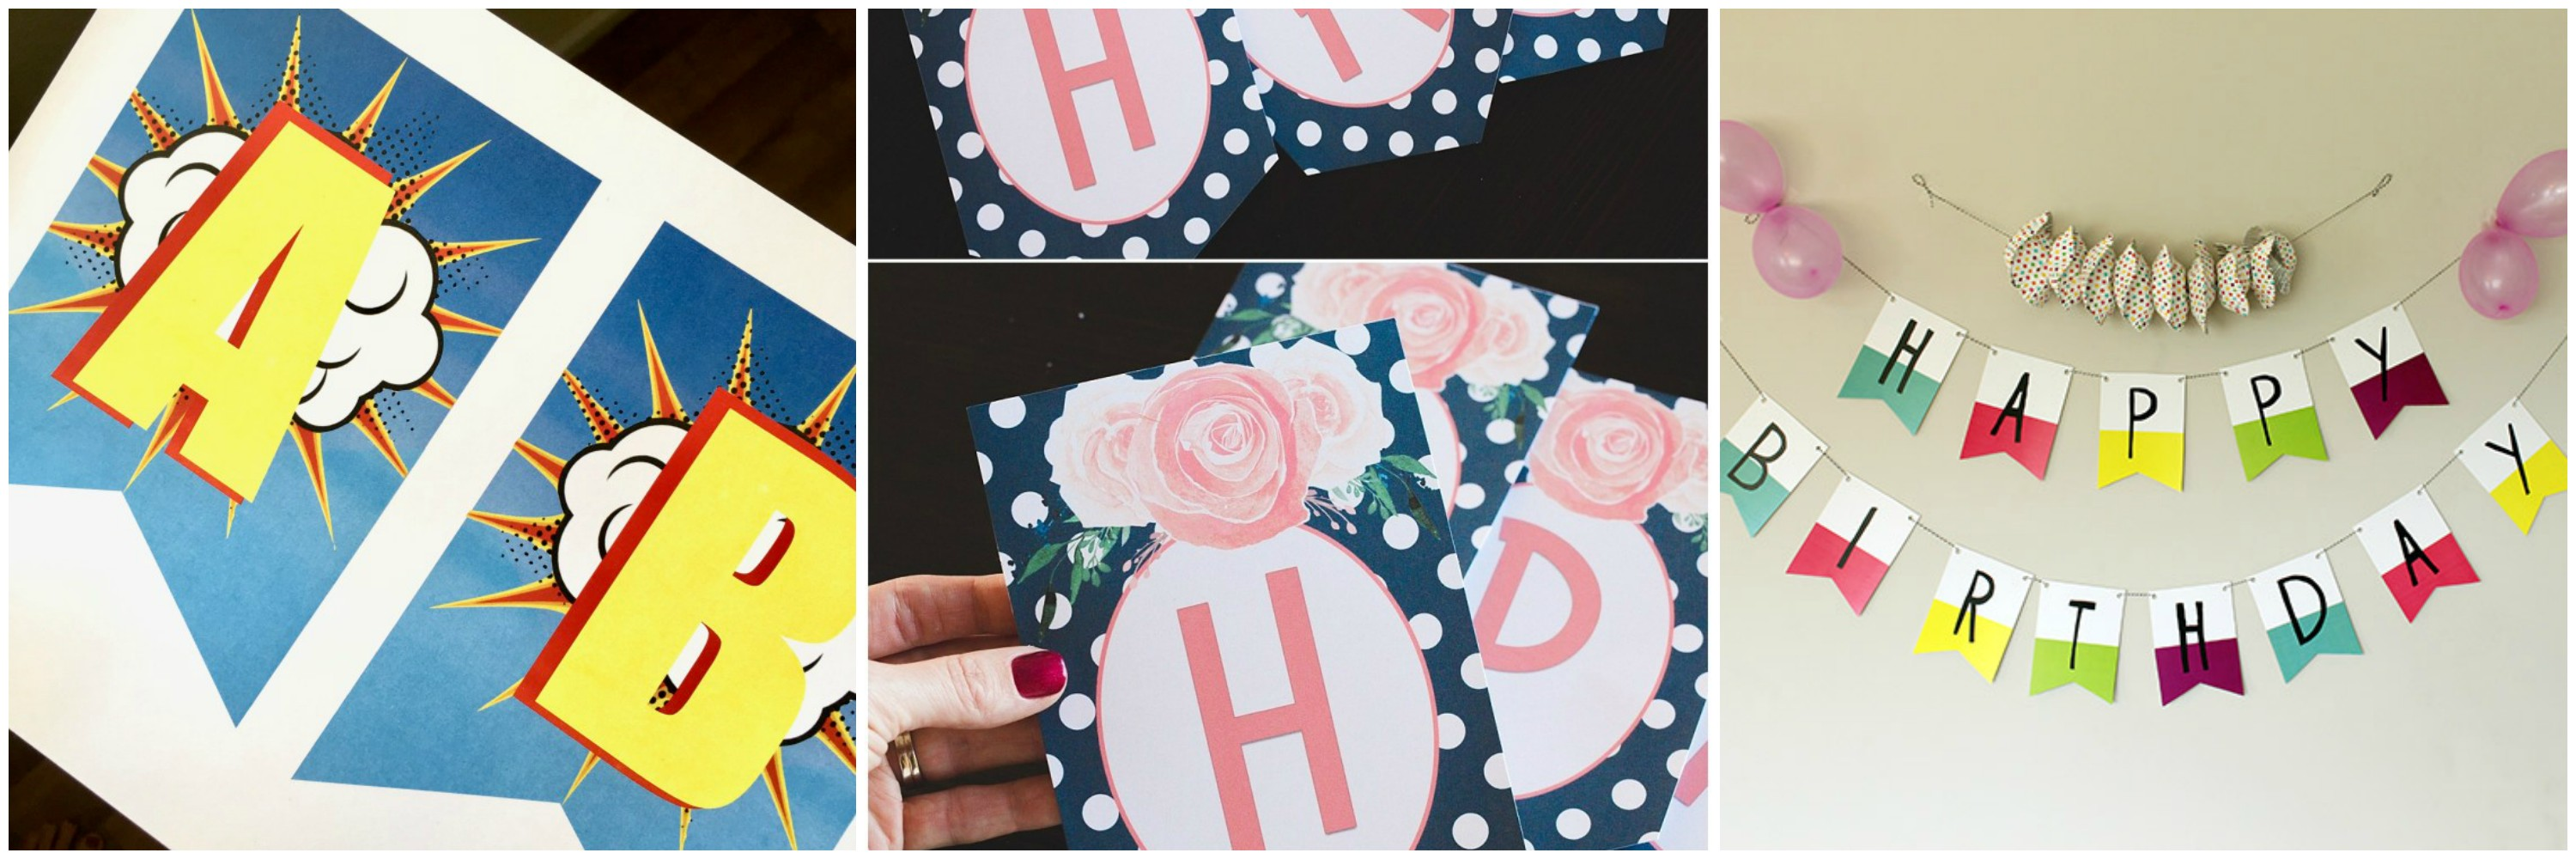 free printable birthday party banners